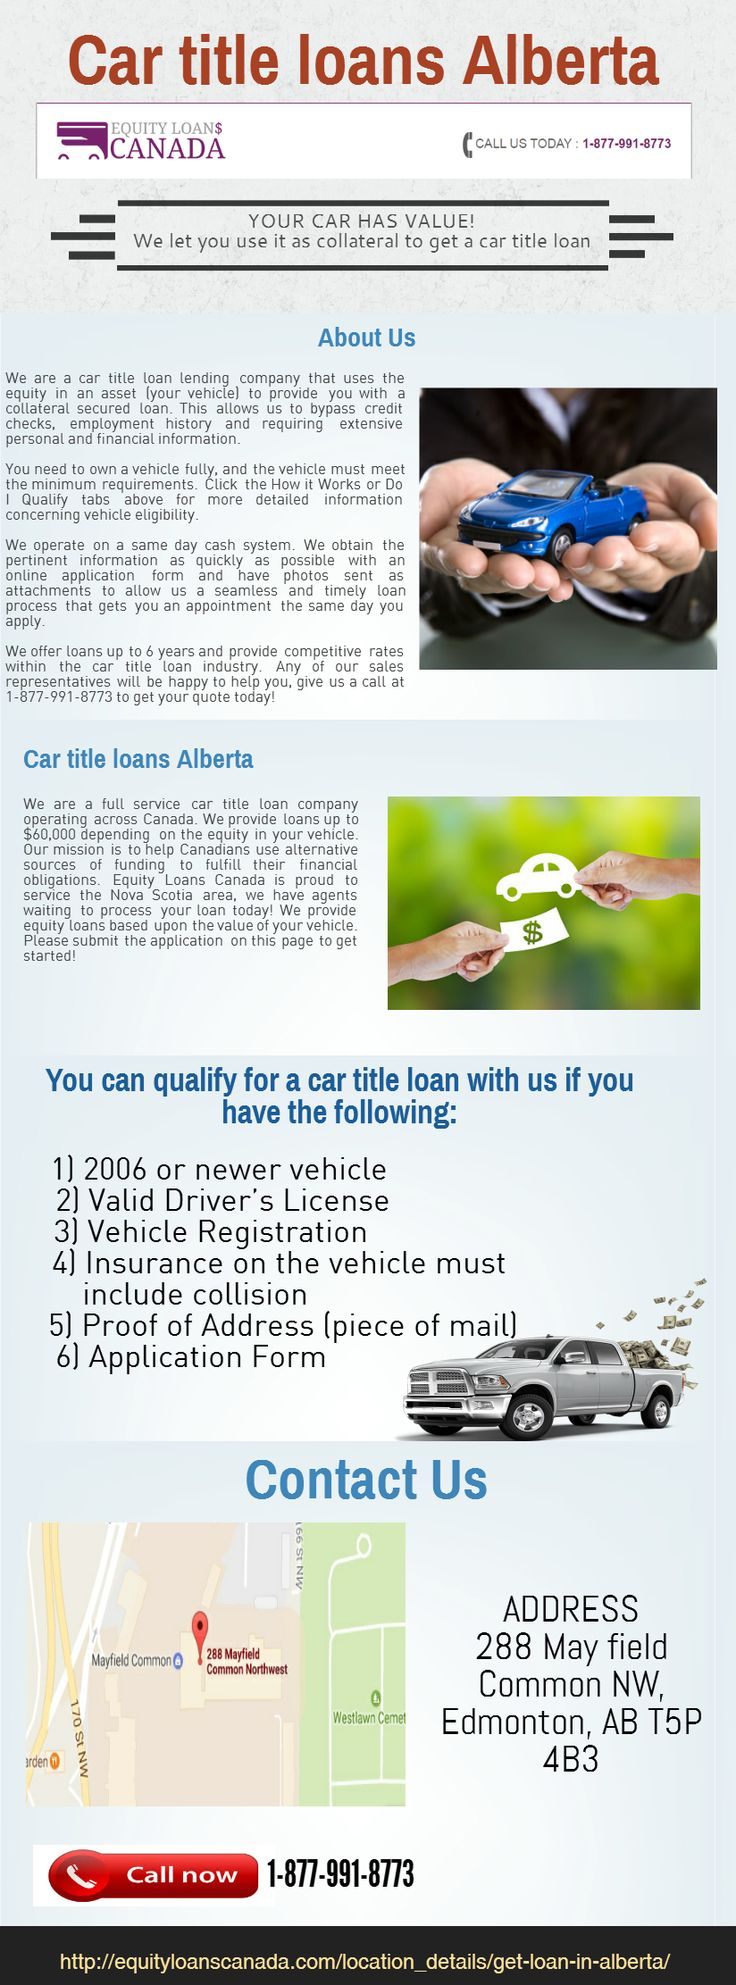 We provide competitive rates within the car title loan industry car title loans alberta give